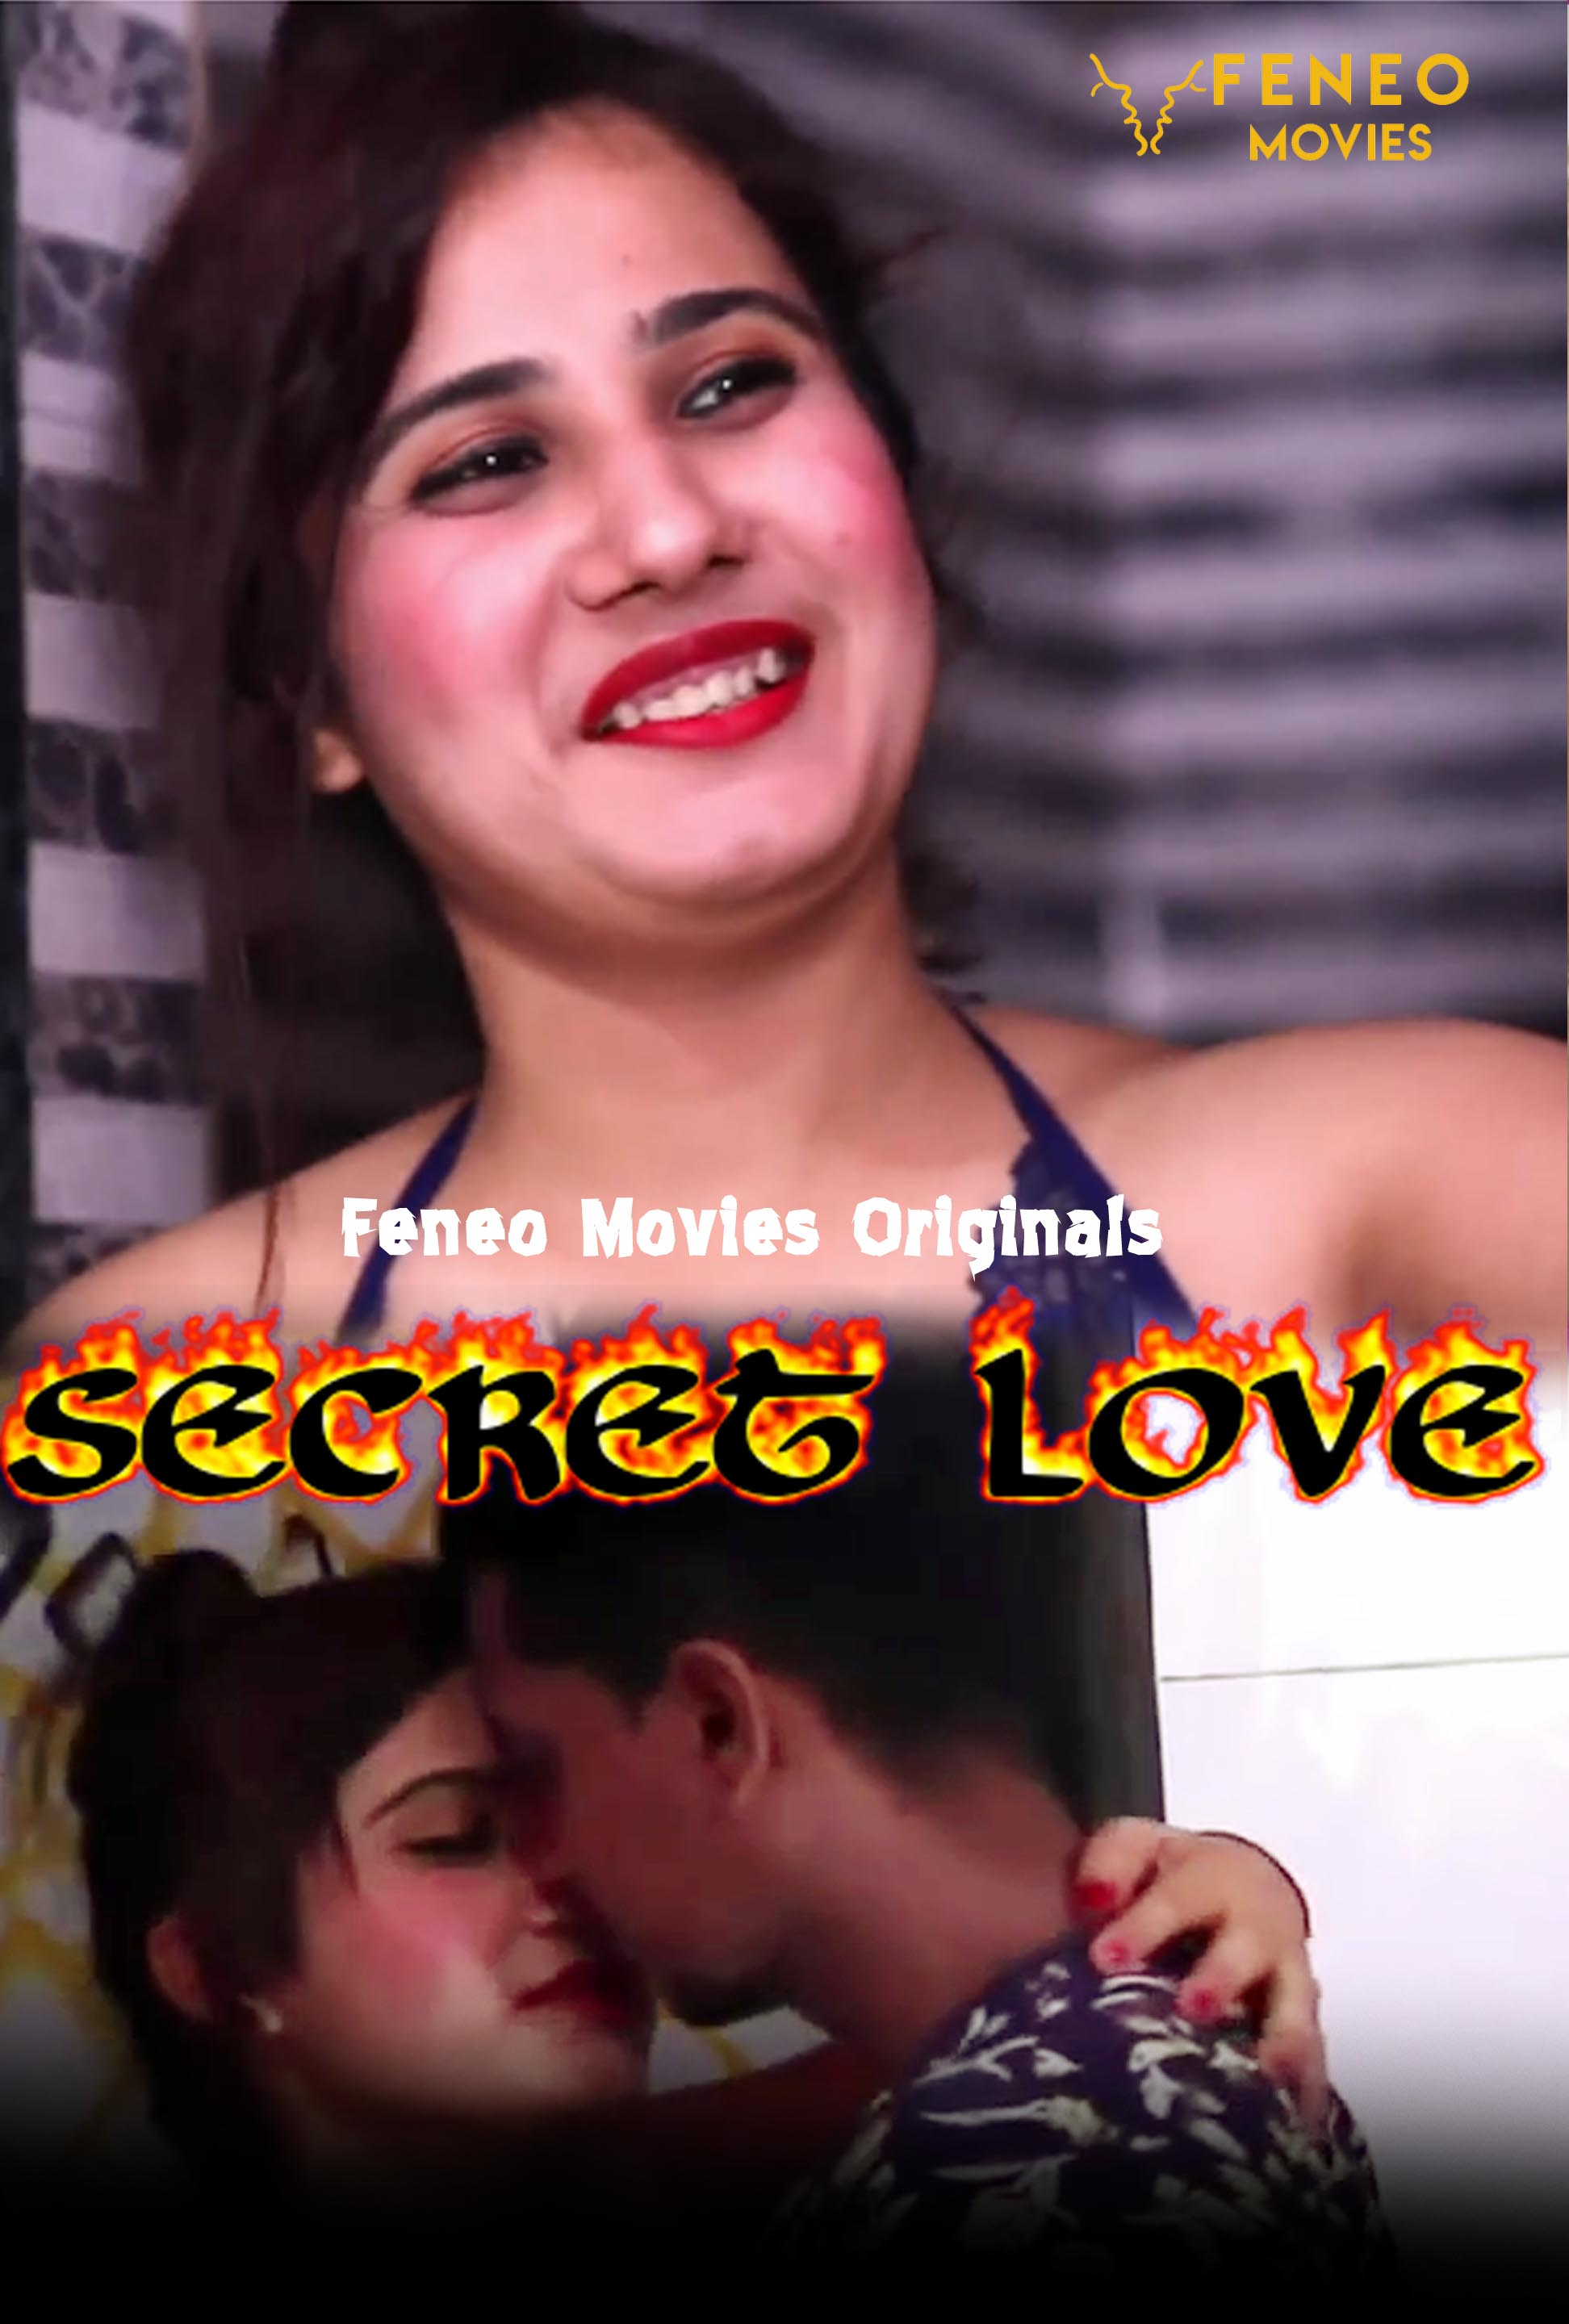 Secret Love 2020 S01E02 Hindi Feneomovies Original Web Series 720p HDRip 213MB Download